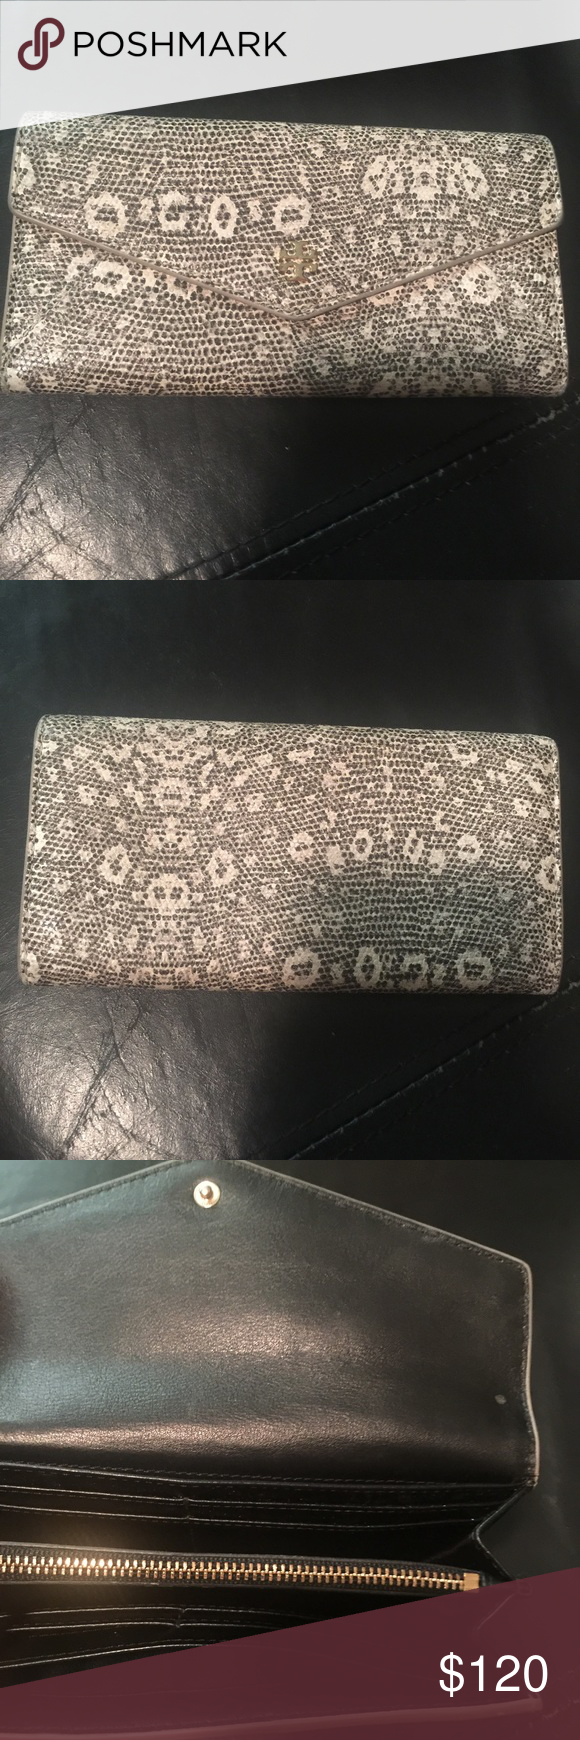 Wallet Tory Burch wallet only used once Tory Burch Bags Wallets